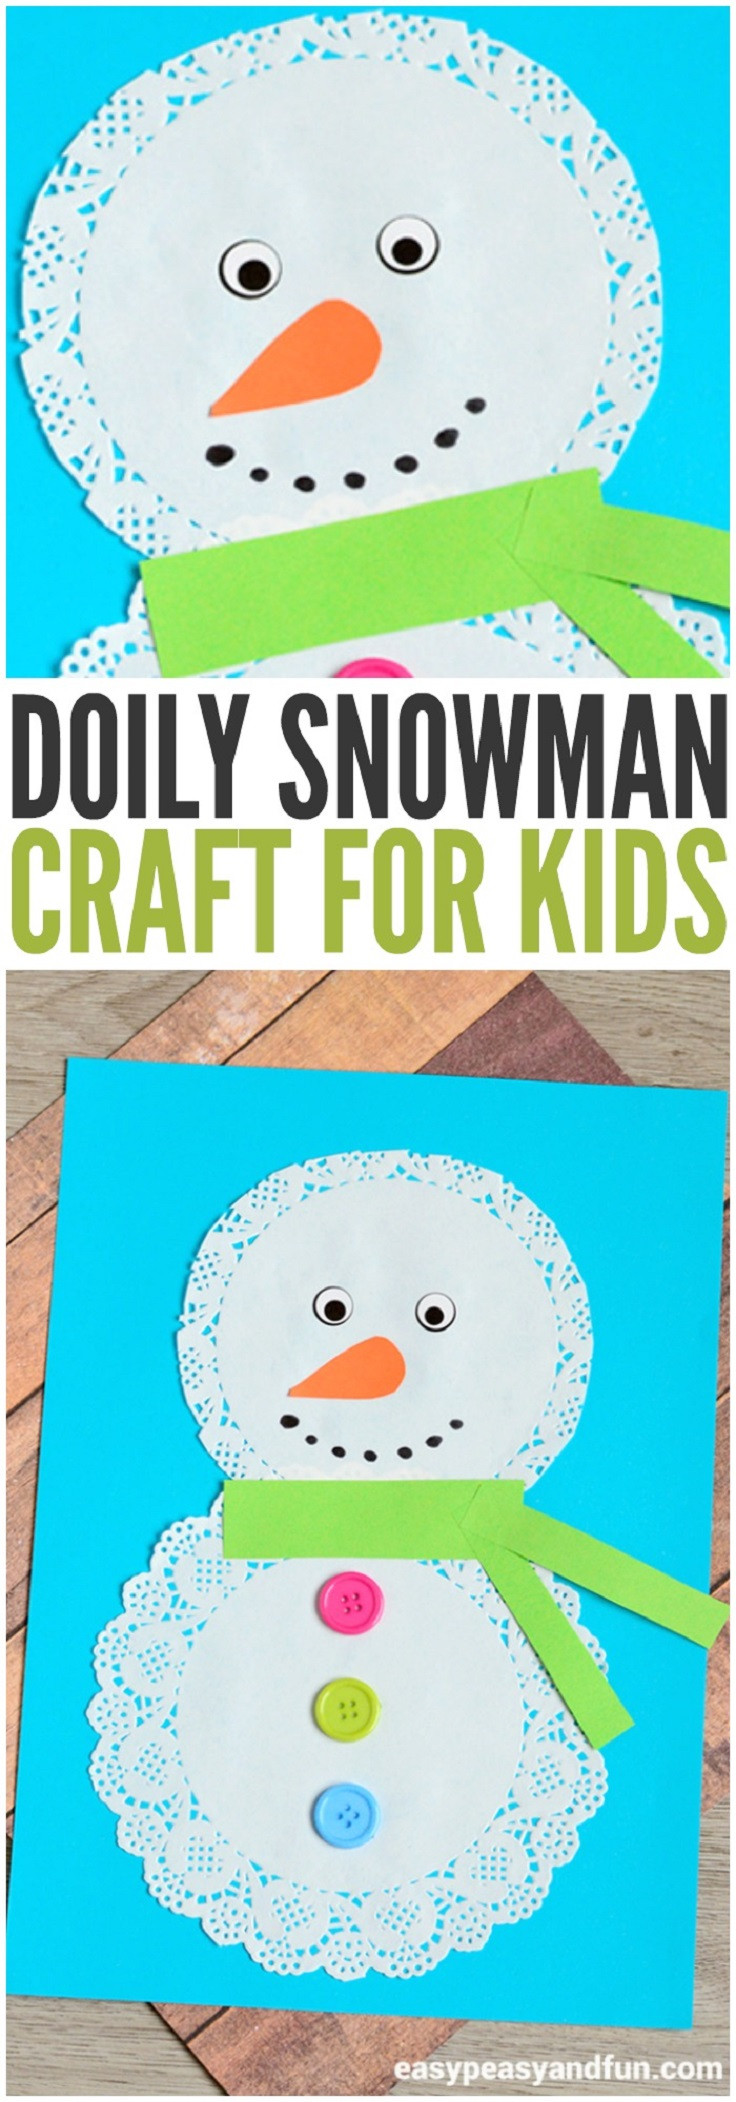 Best ideas about Winter-Crafts-For-Kids At Home . Save or Pin 14 Jingling Winter Crafts for Kids to Bring Flurries and Now.